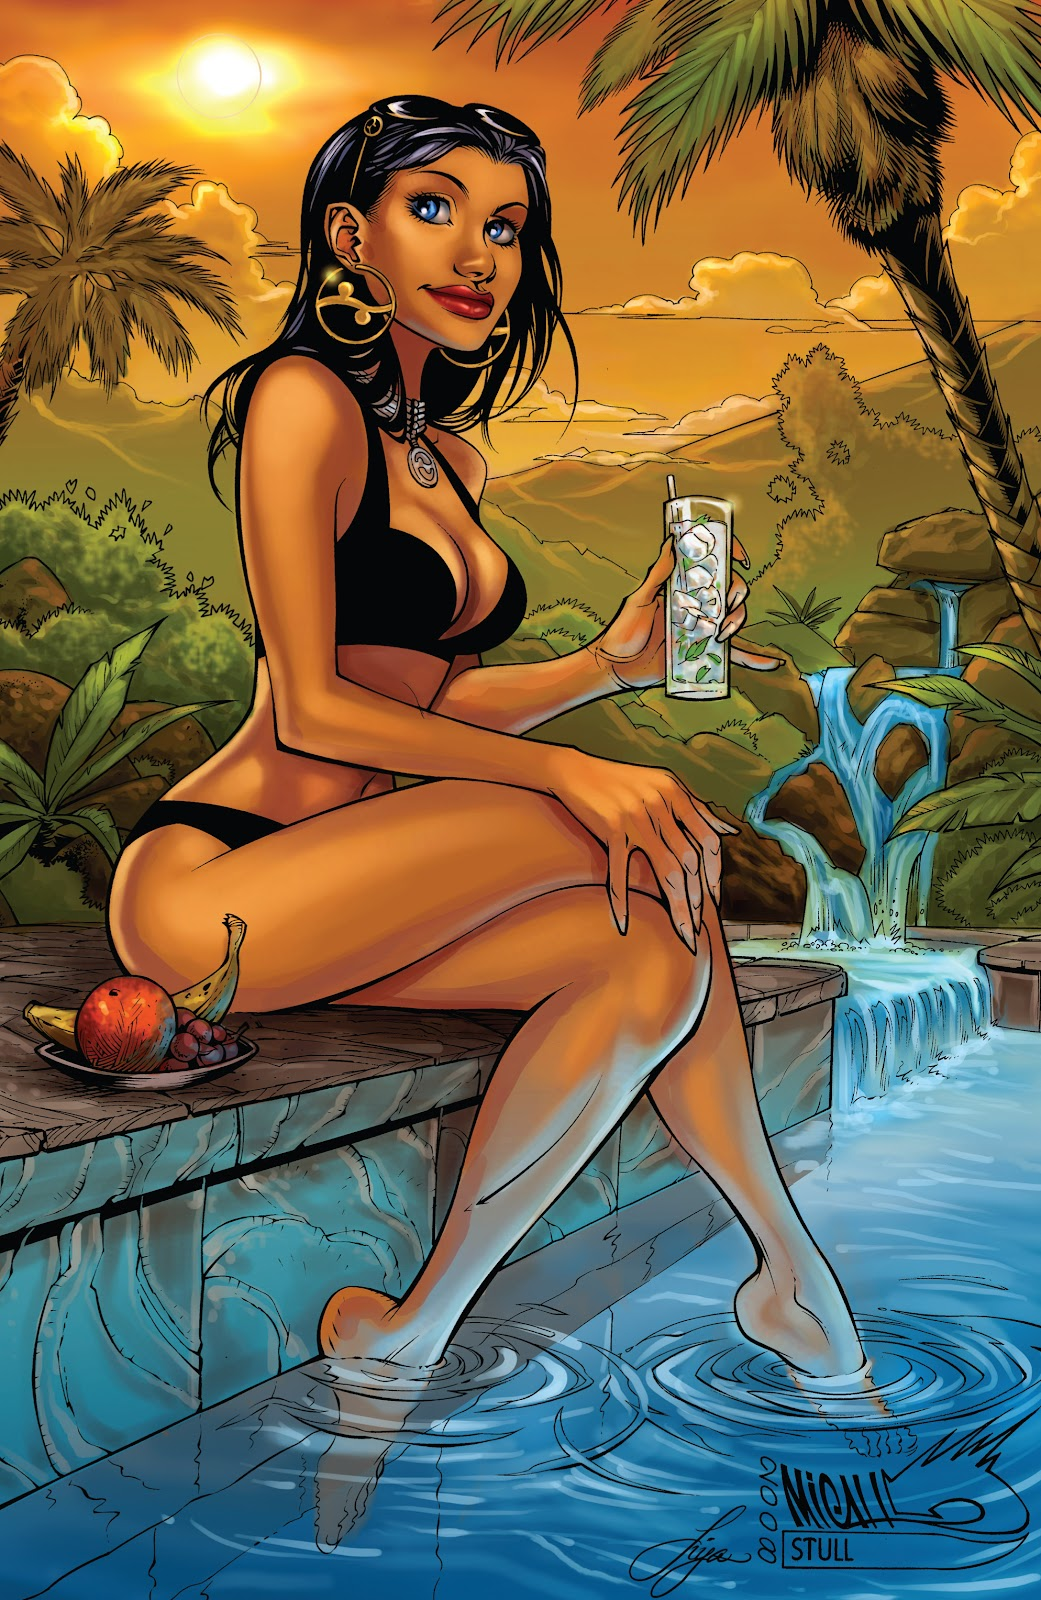 Read online Aspen Splash: Swimsuit Spectacular comic -  Issue # Issue 2009 - 3